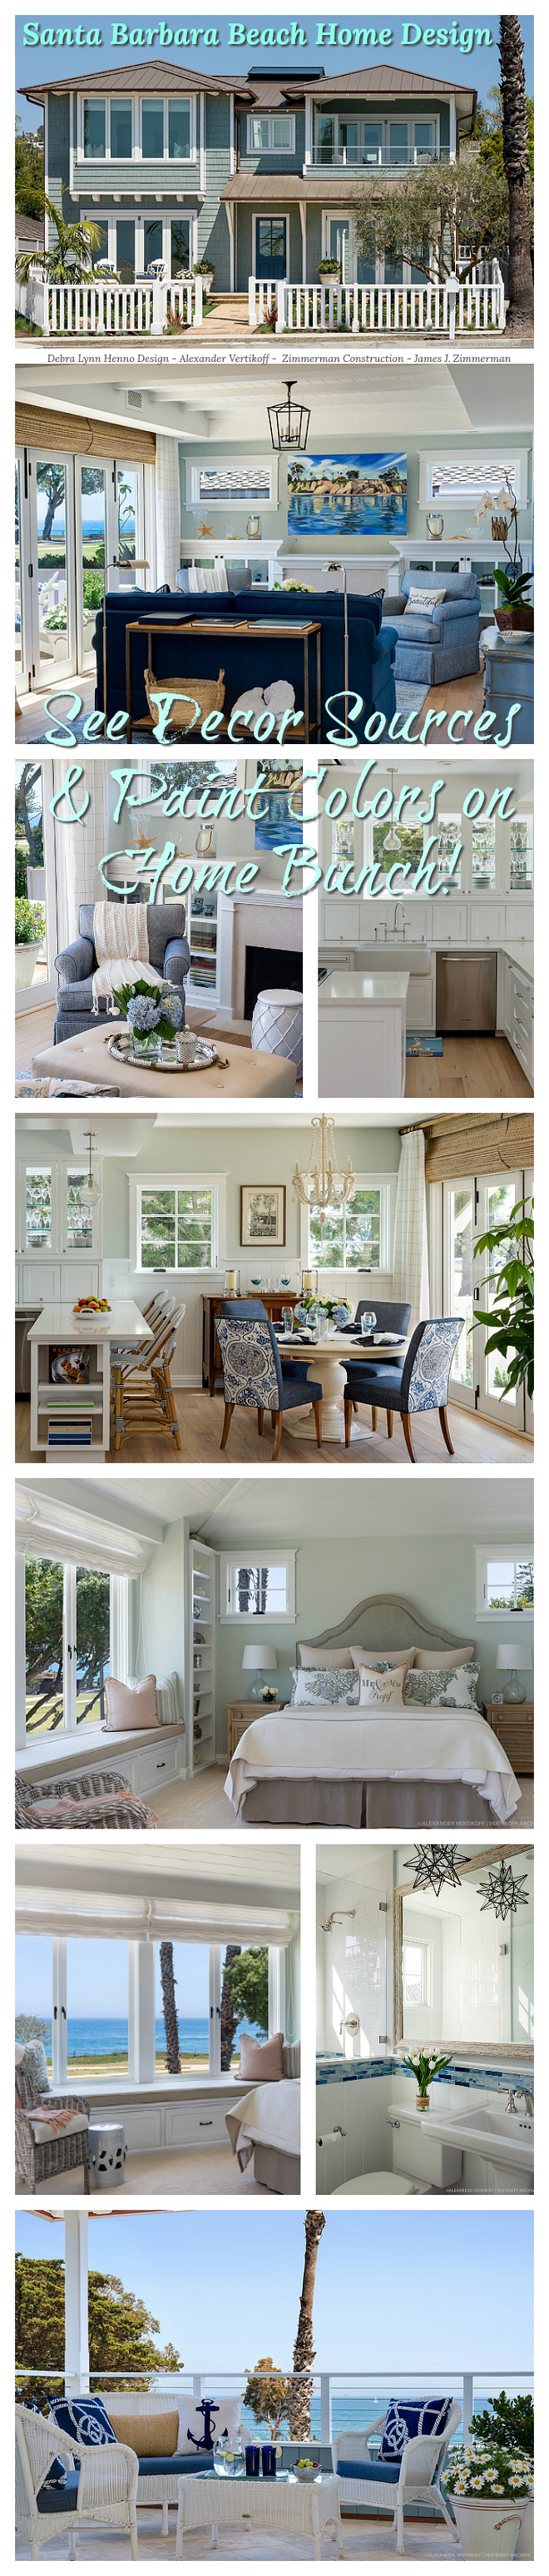 Santa Barbara Beach Home Design Santa Barbara Beach Home Design Ideas Santa Barbara Beach Home Design Paint Colors Santa Barbara Beach Home Design Decor Source on Home Bunch #SantaBarbara #BeachHome #BeachHomeDesign